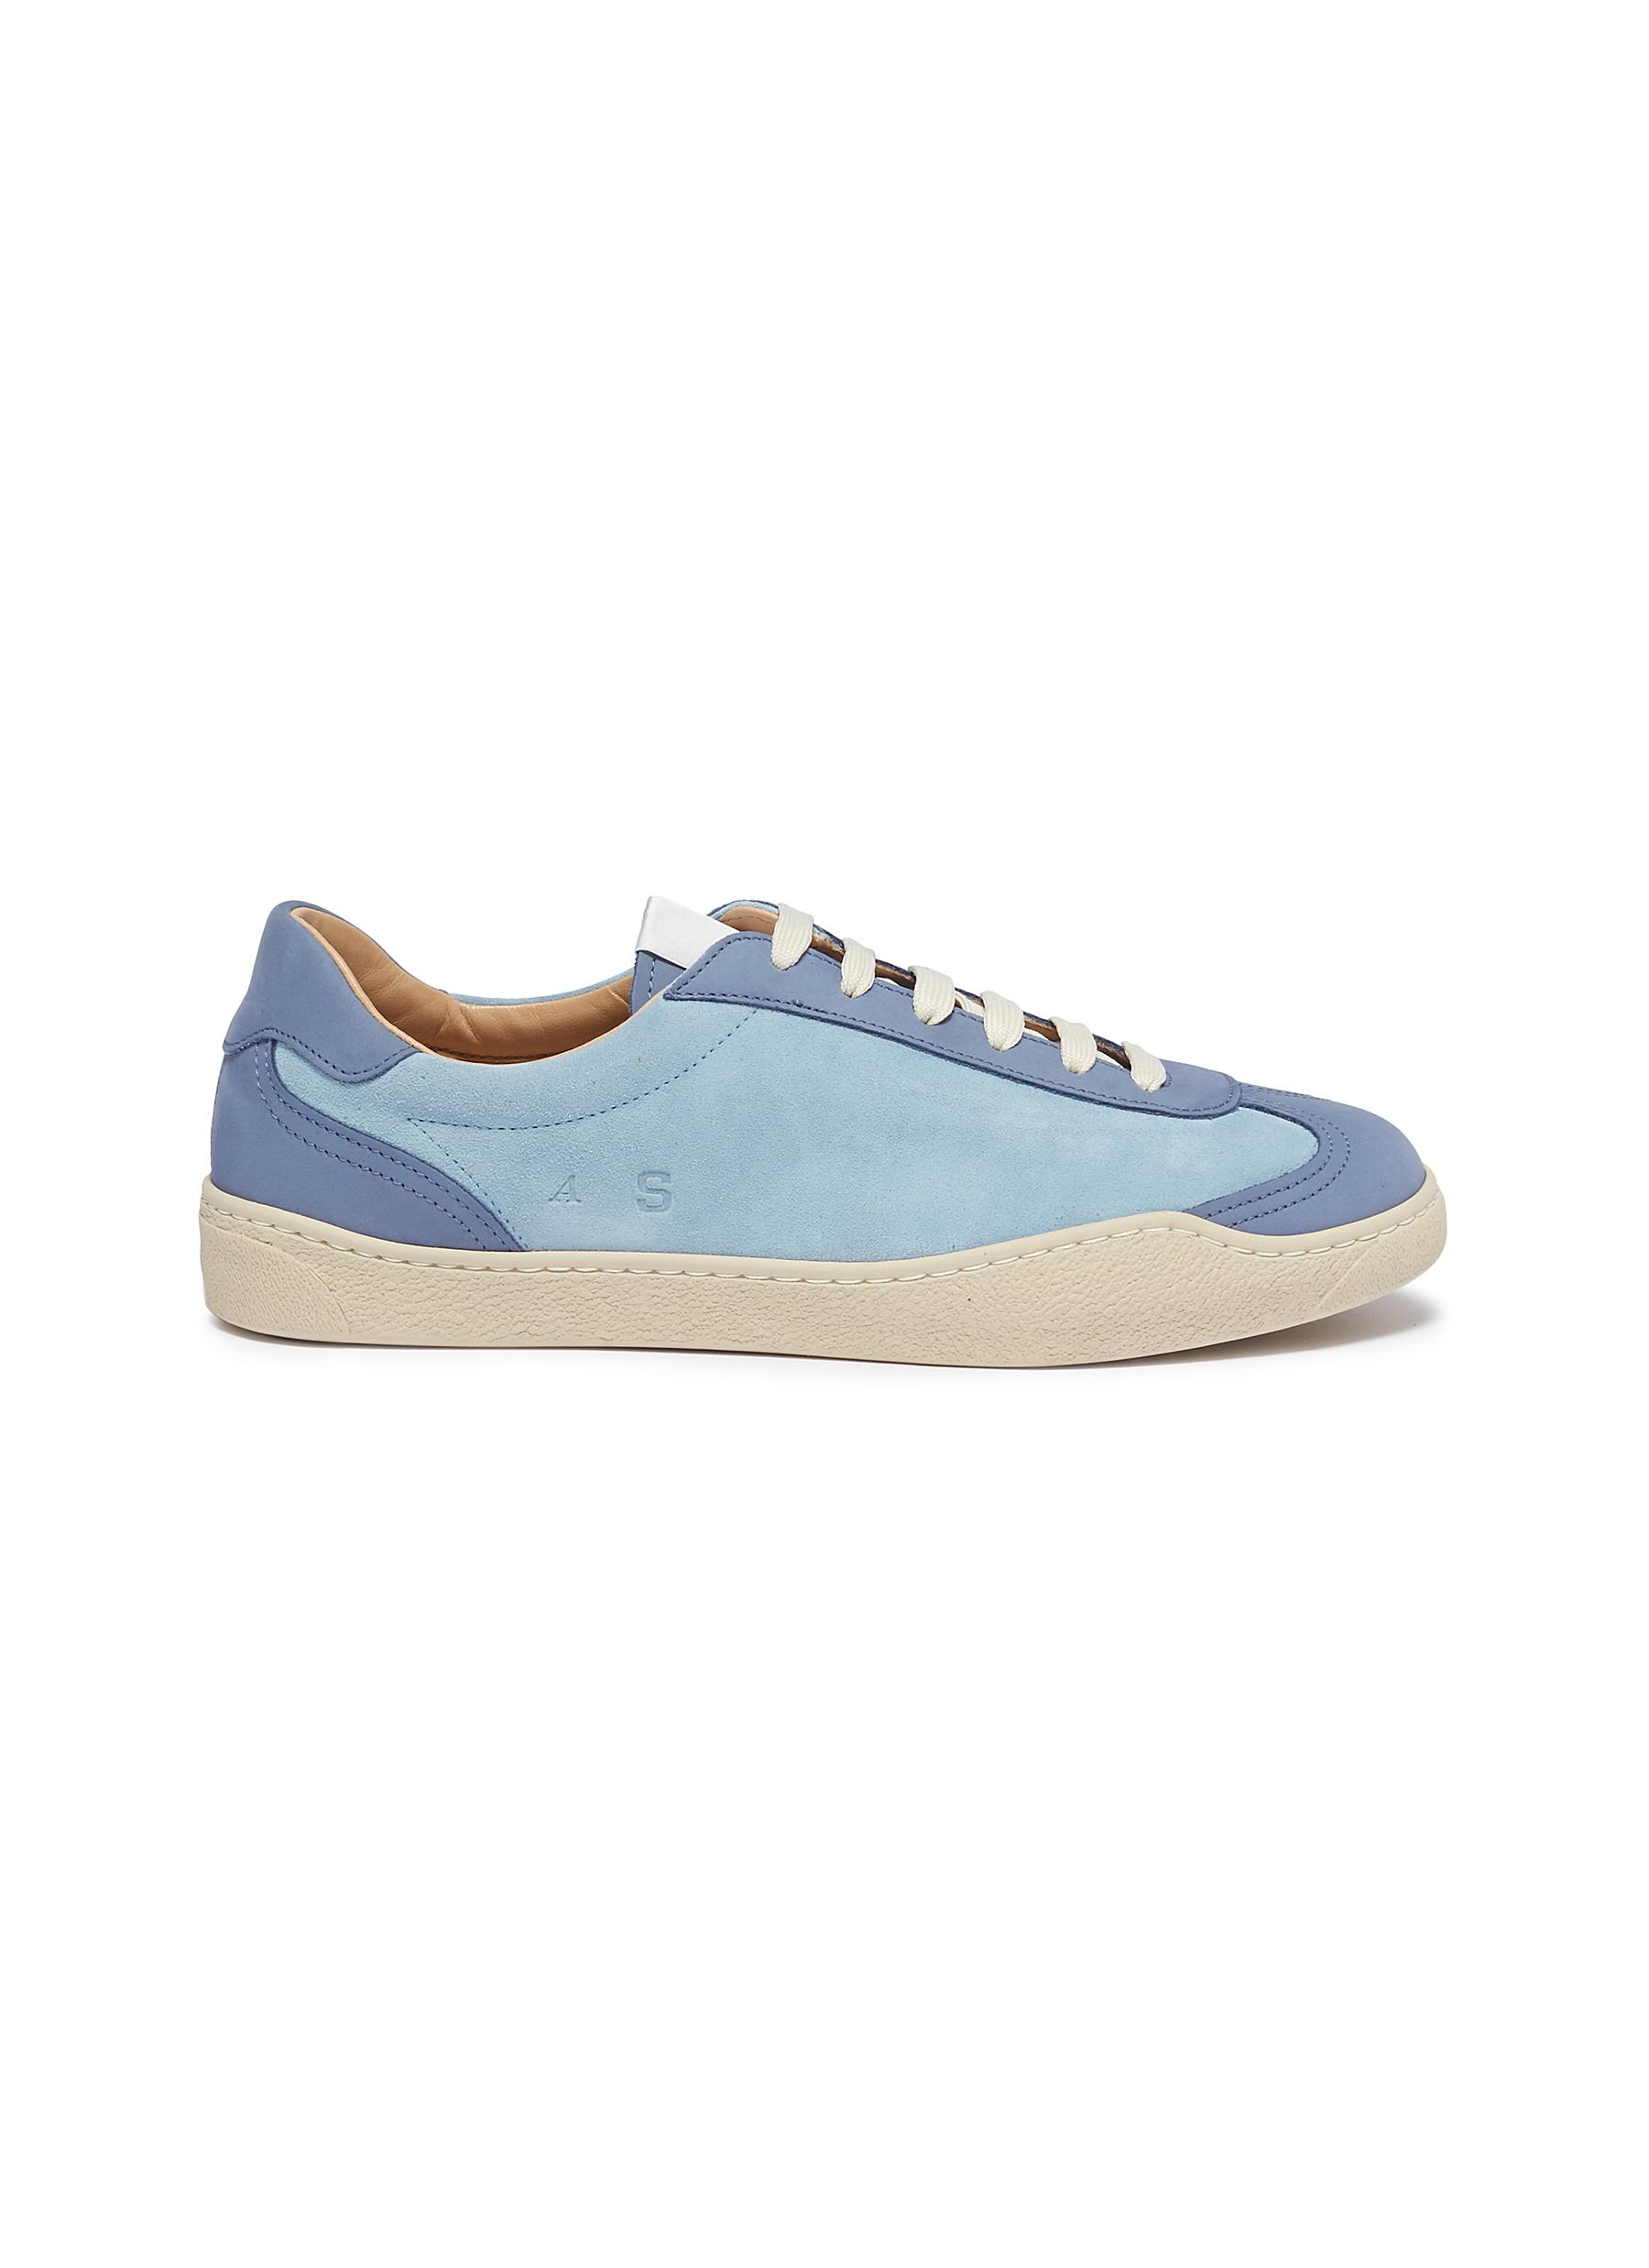 Lars leather and suede sneakers by Acne Studios